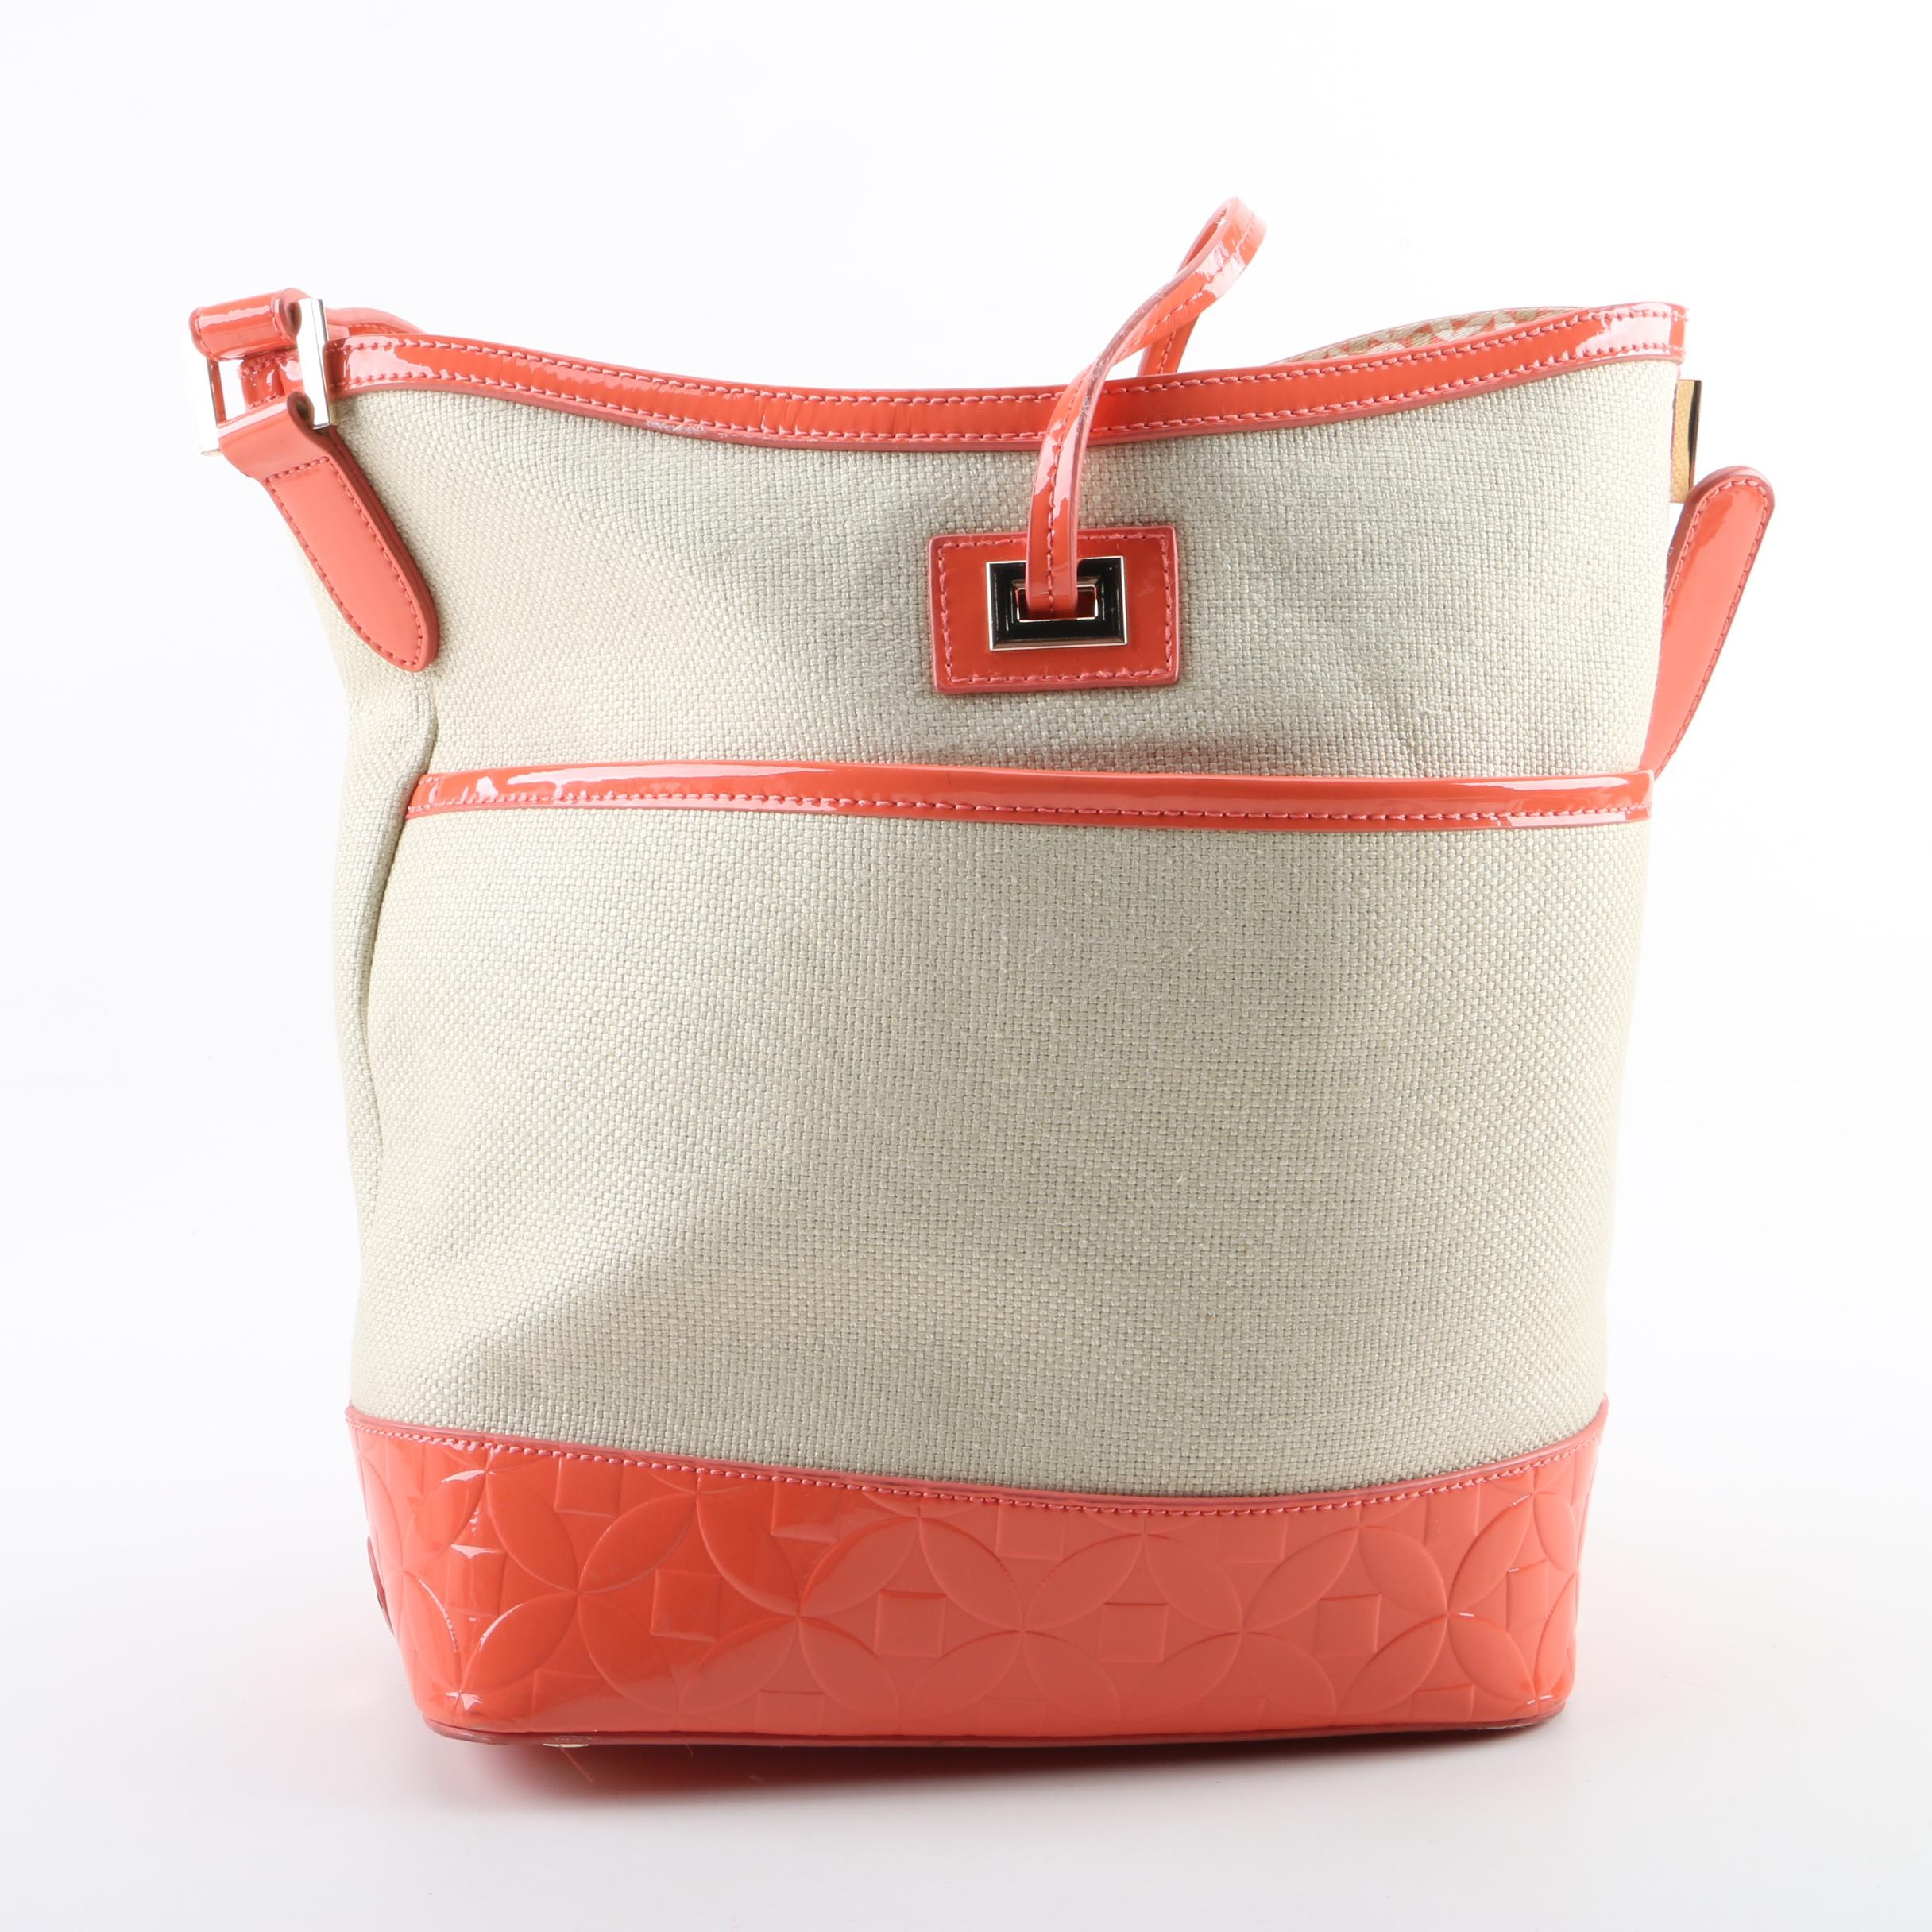 Spartina 449 Beige Canvas and Orange Patent Leather Bucket Bag